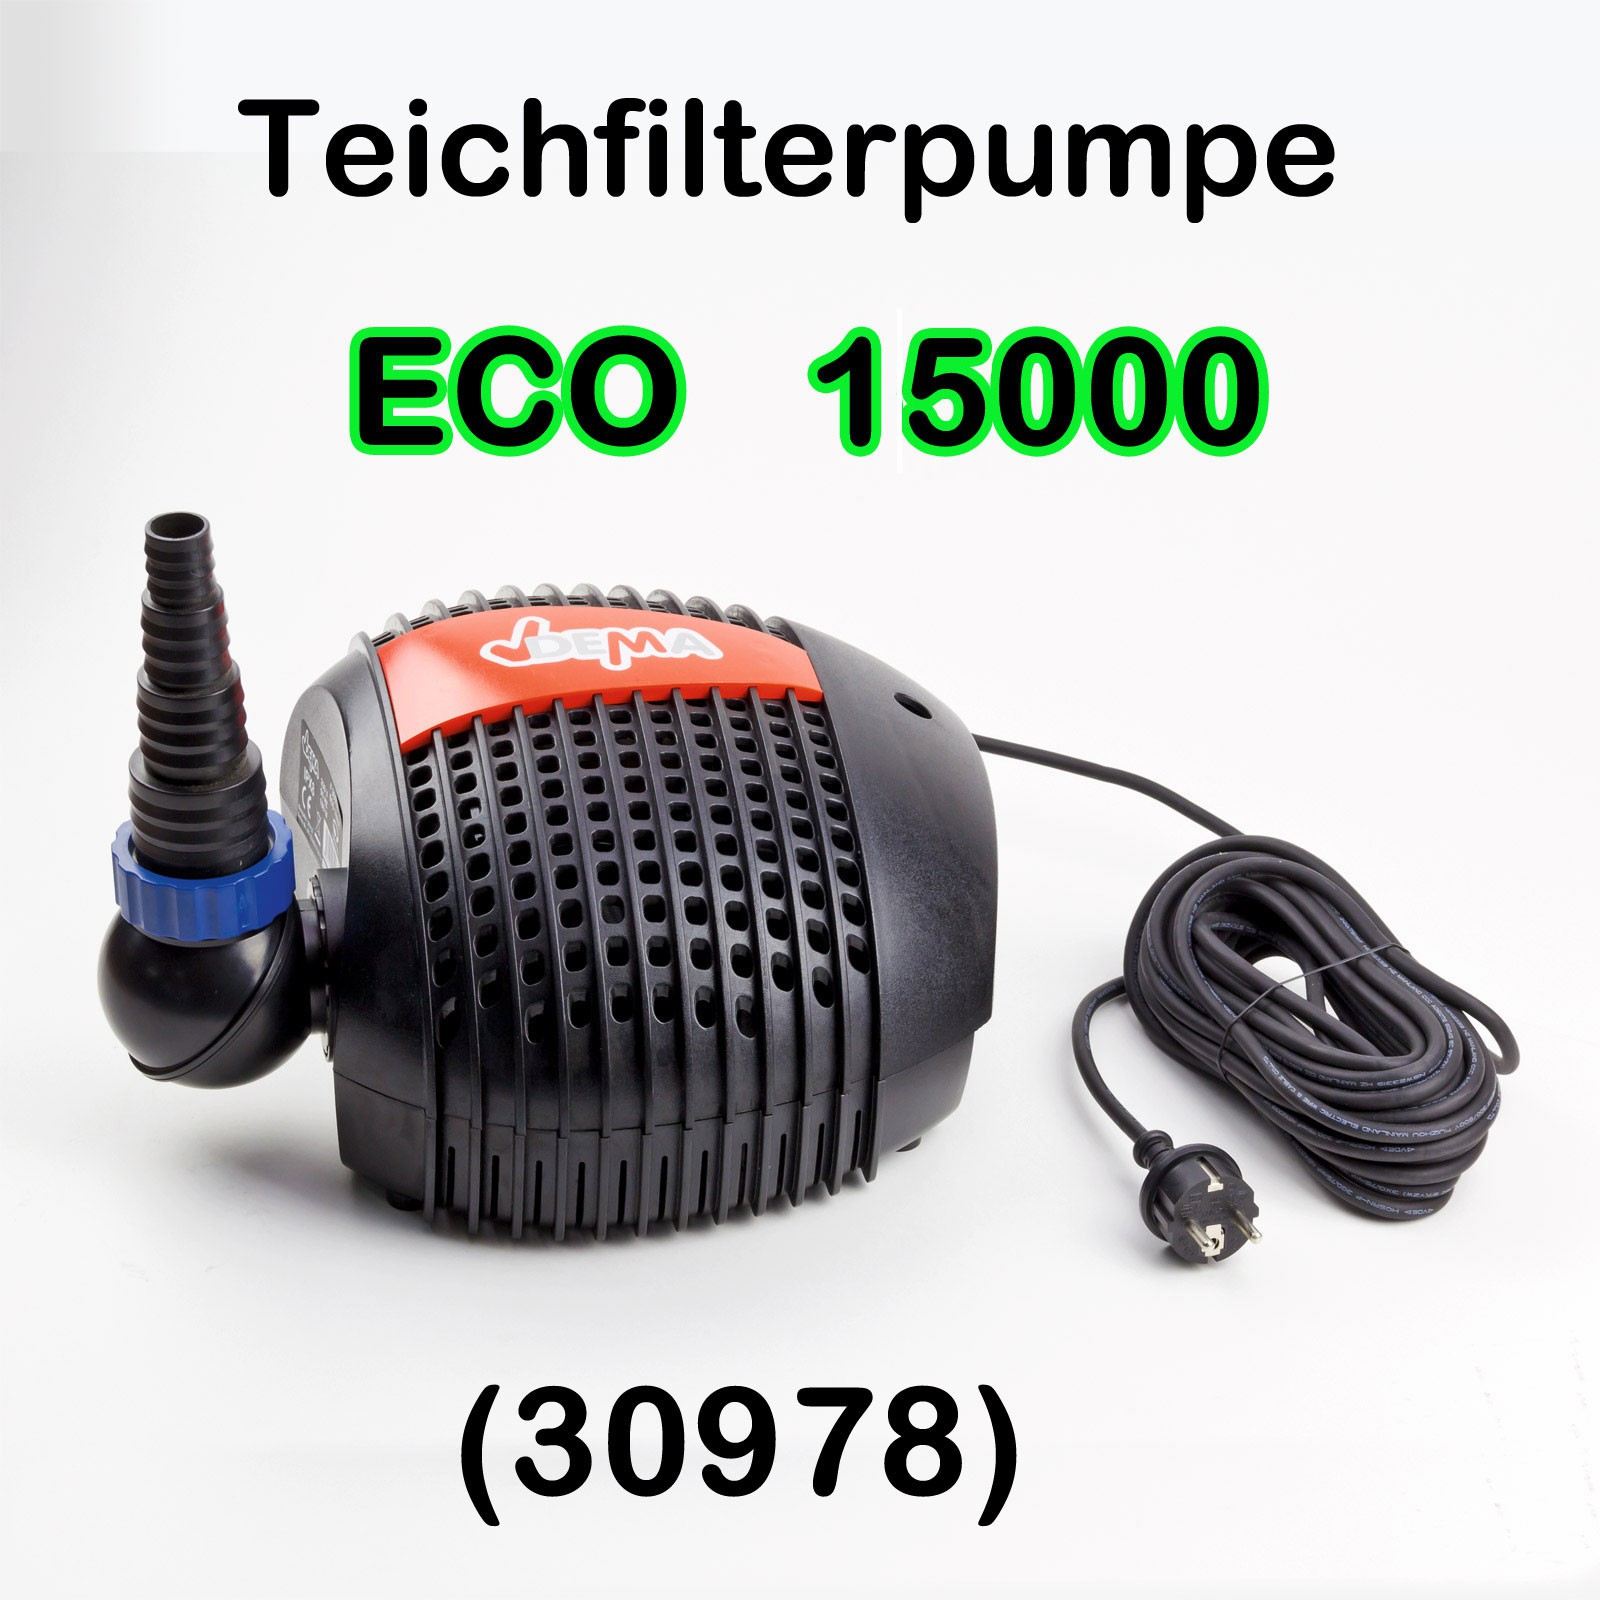 teichfilterpumpe teichpumpe eco 4600 15000 ltr h grobfilter bachlaufpumpe ebay. Black Bedroom Furniture Sets. Home Design Ideas